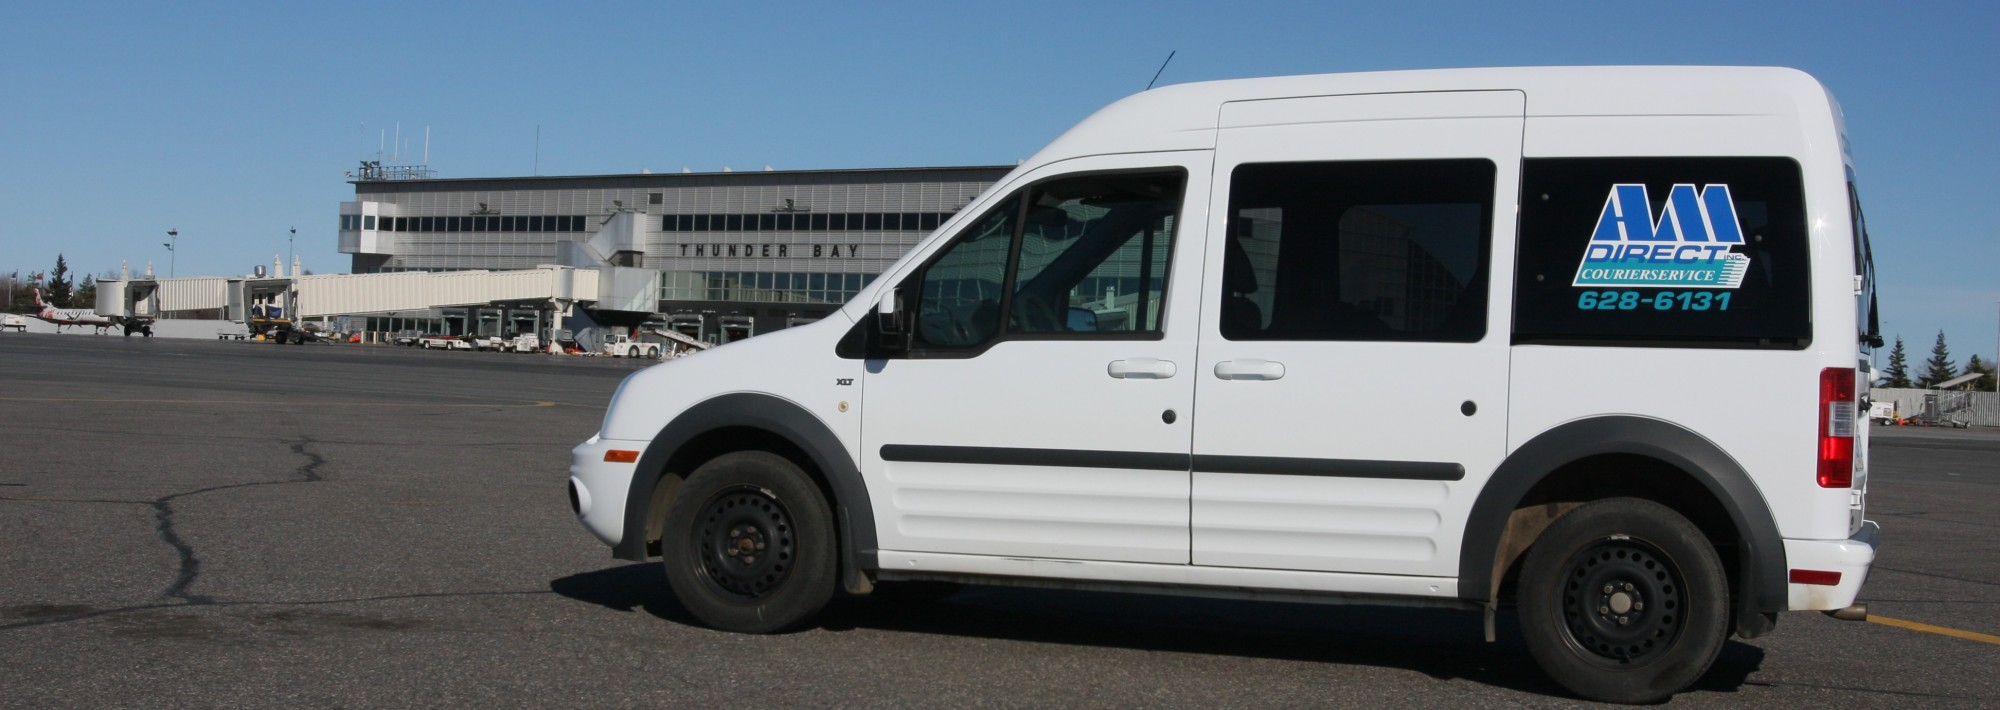 cropped-AMDirect-Van.jpg